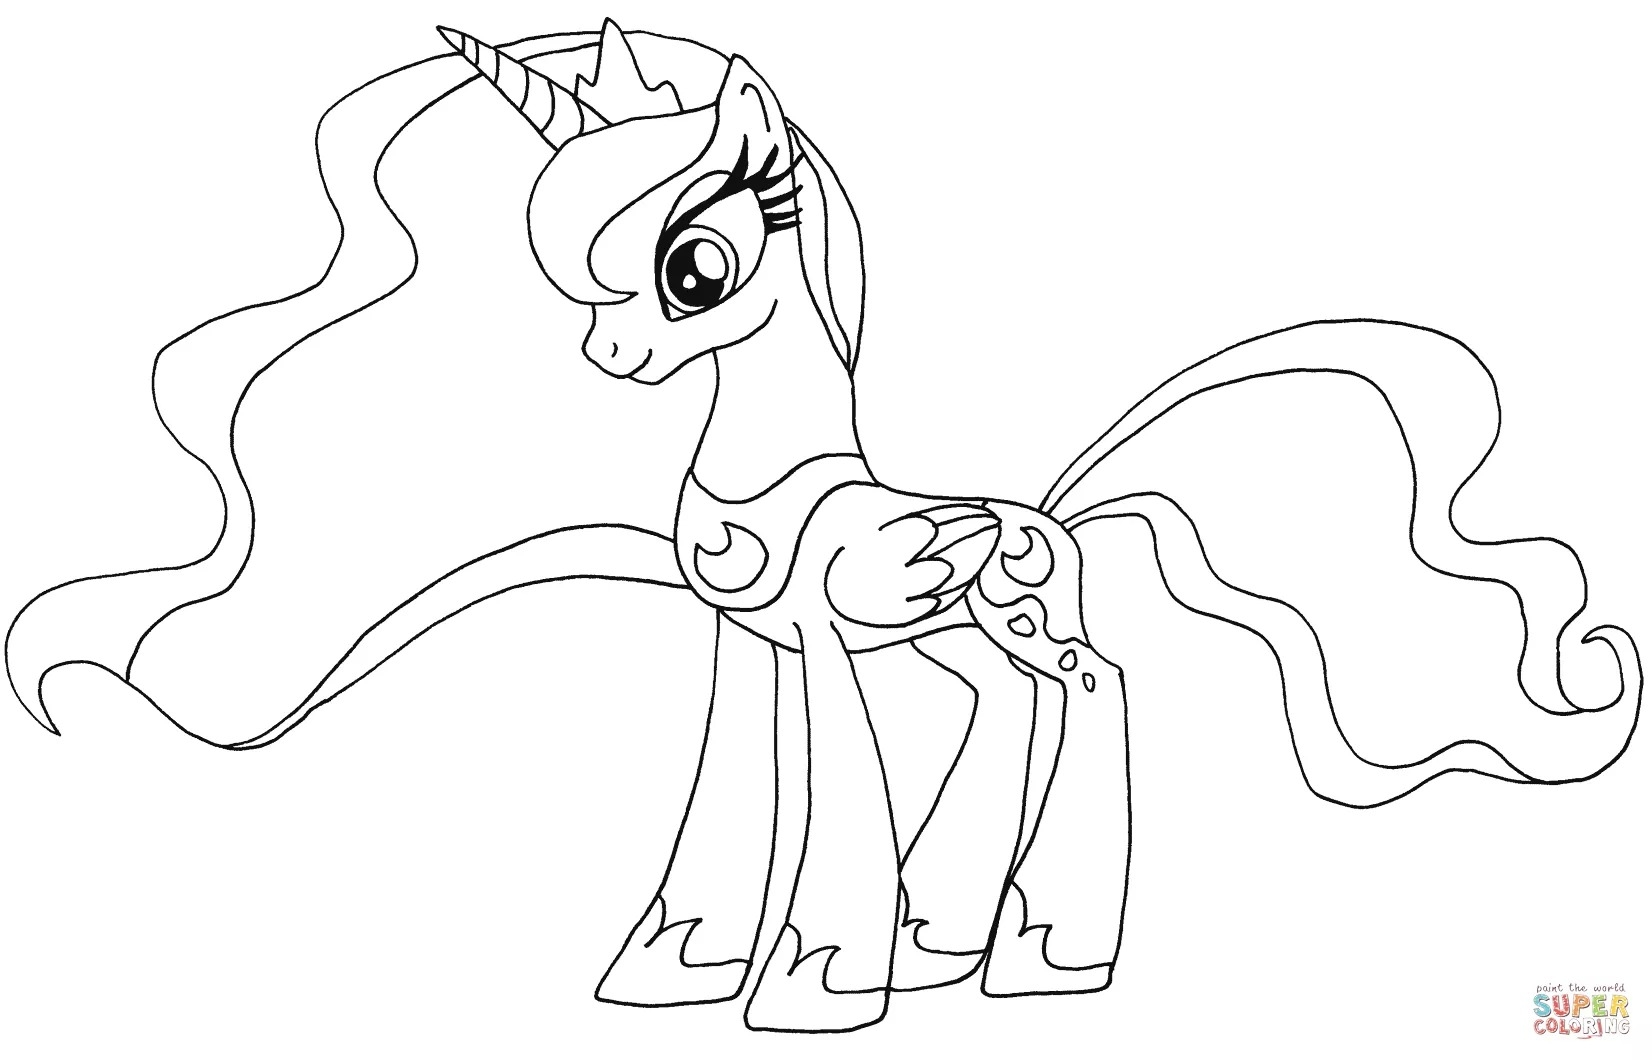 alicorn mlp coloring page coloring pages my little pony alicorn printable alicorn page mlp coloring